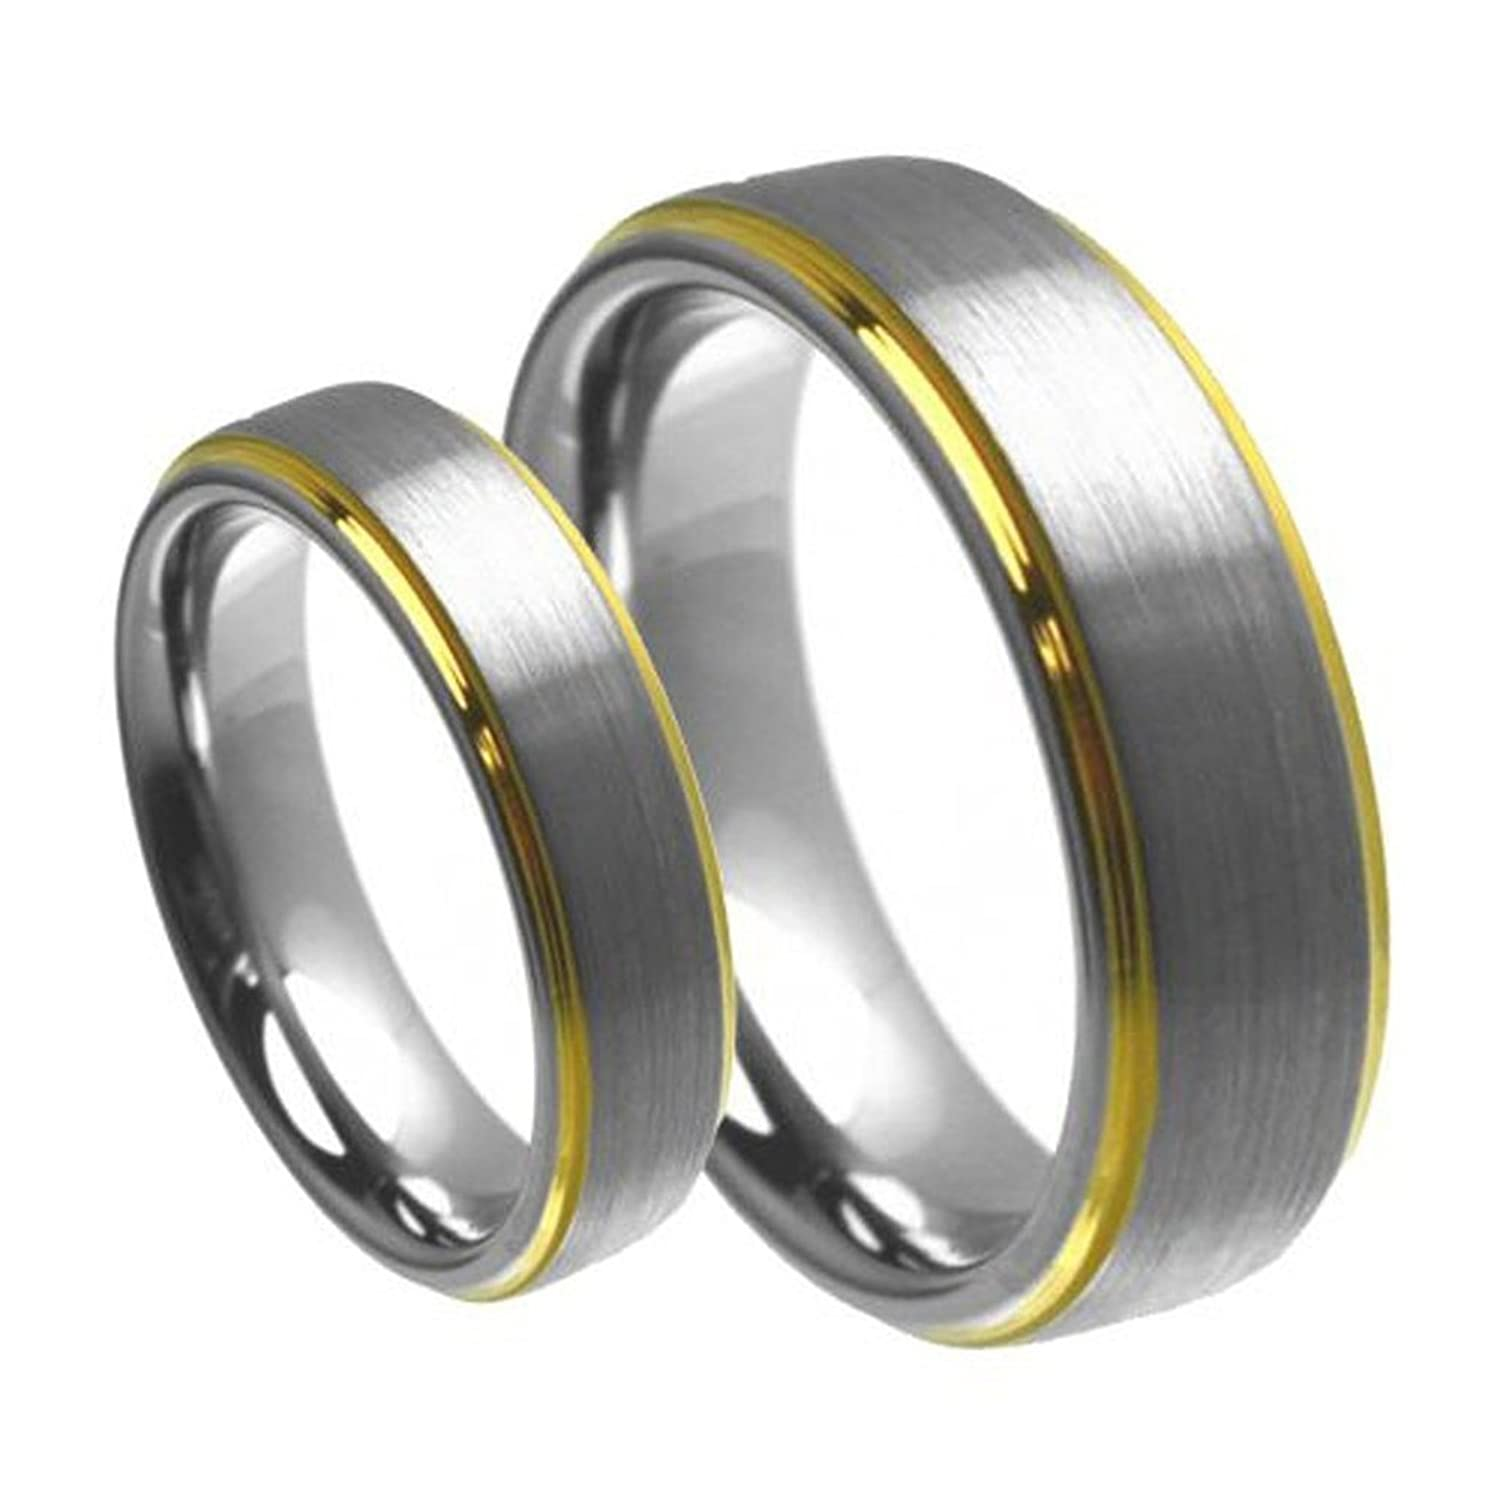 (2) Set Men & Women's 8mm/6mm Brushed Center with Gold Step Edge Tungsten Carbide Wedding Band Ring Set